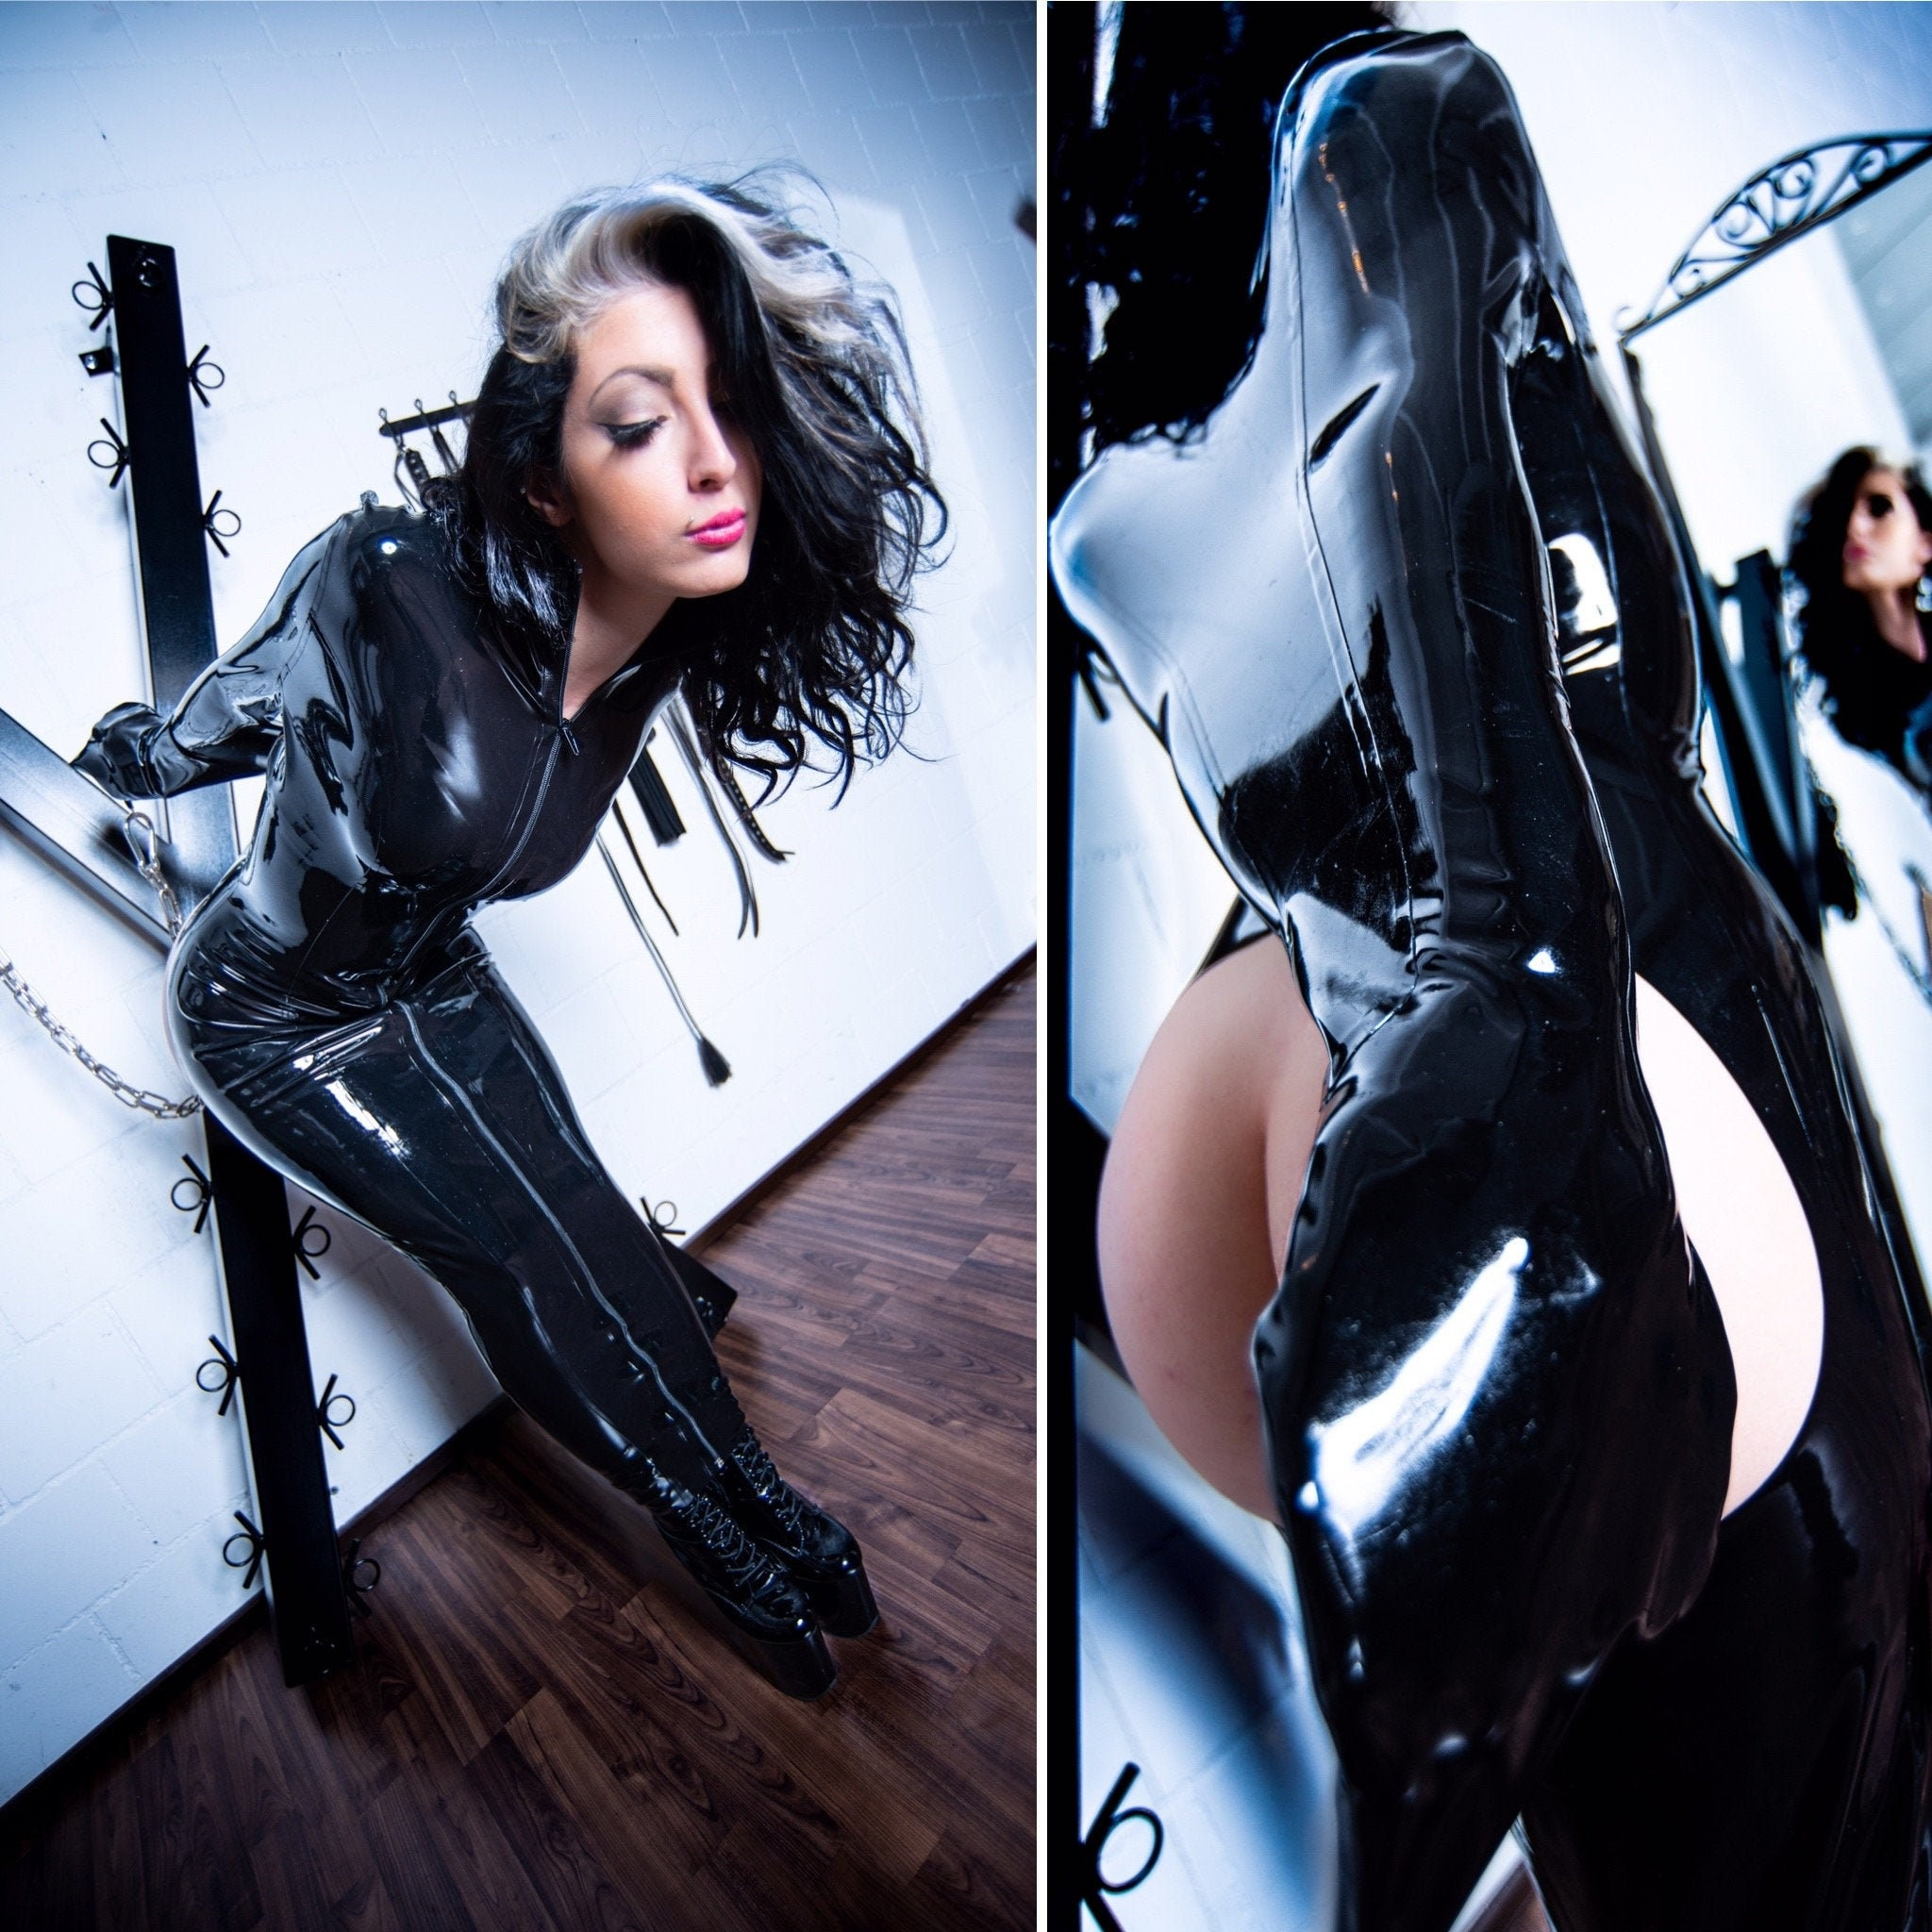 Armbinder hobble latex bondage dress. Made to measure only